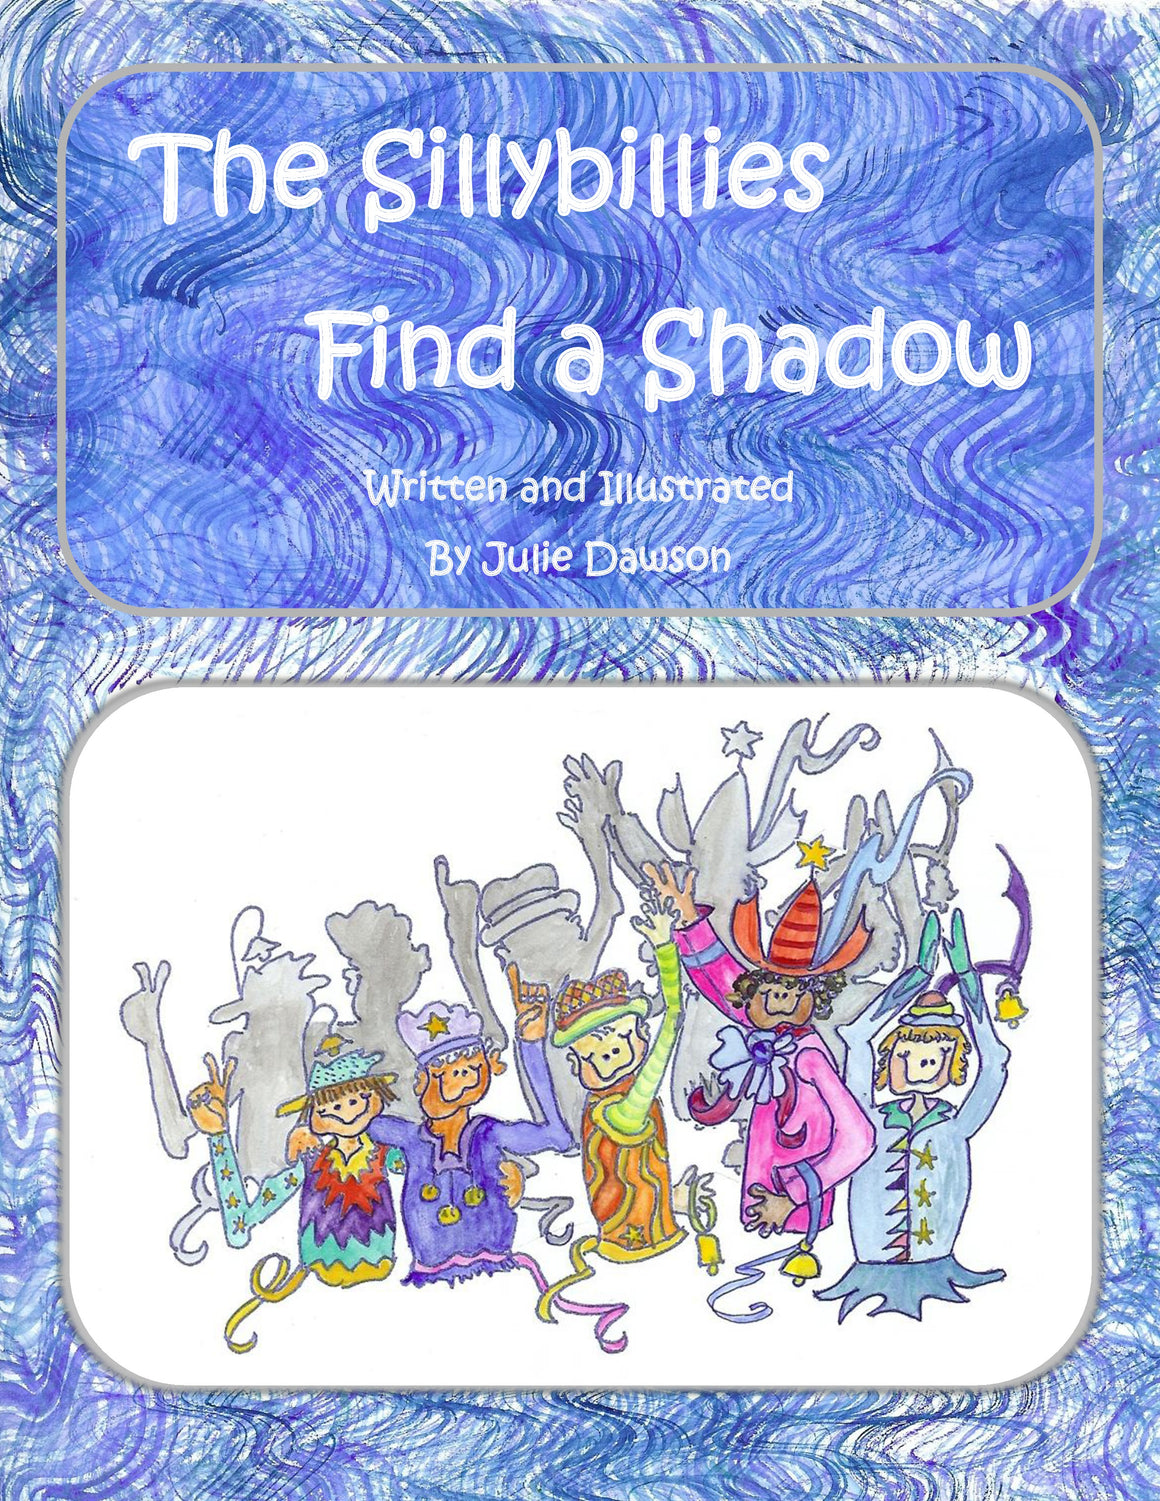 The Sillybillies Find a Shadow